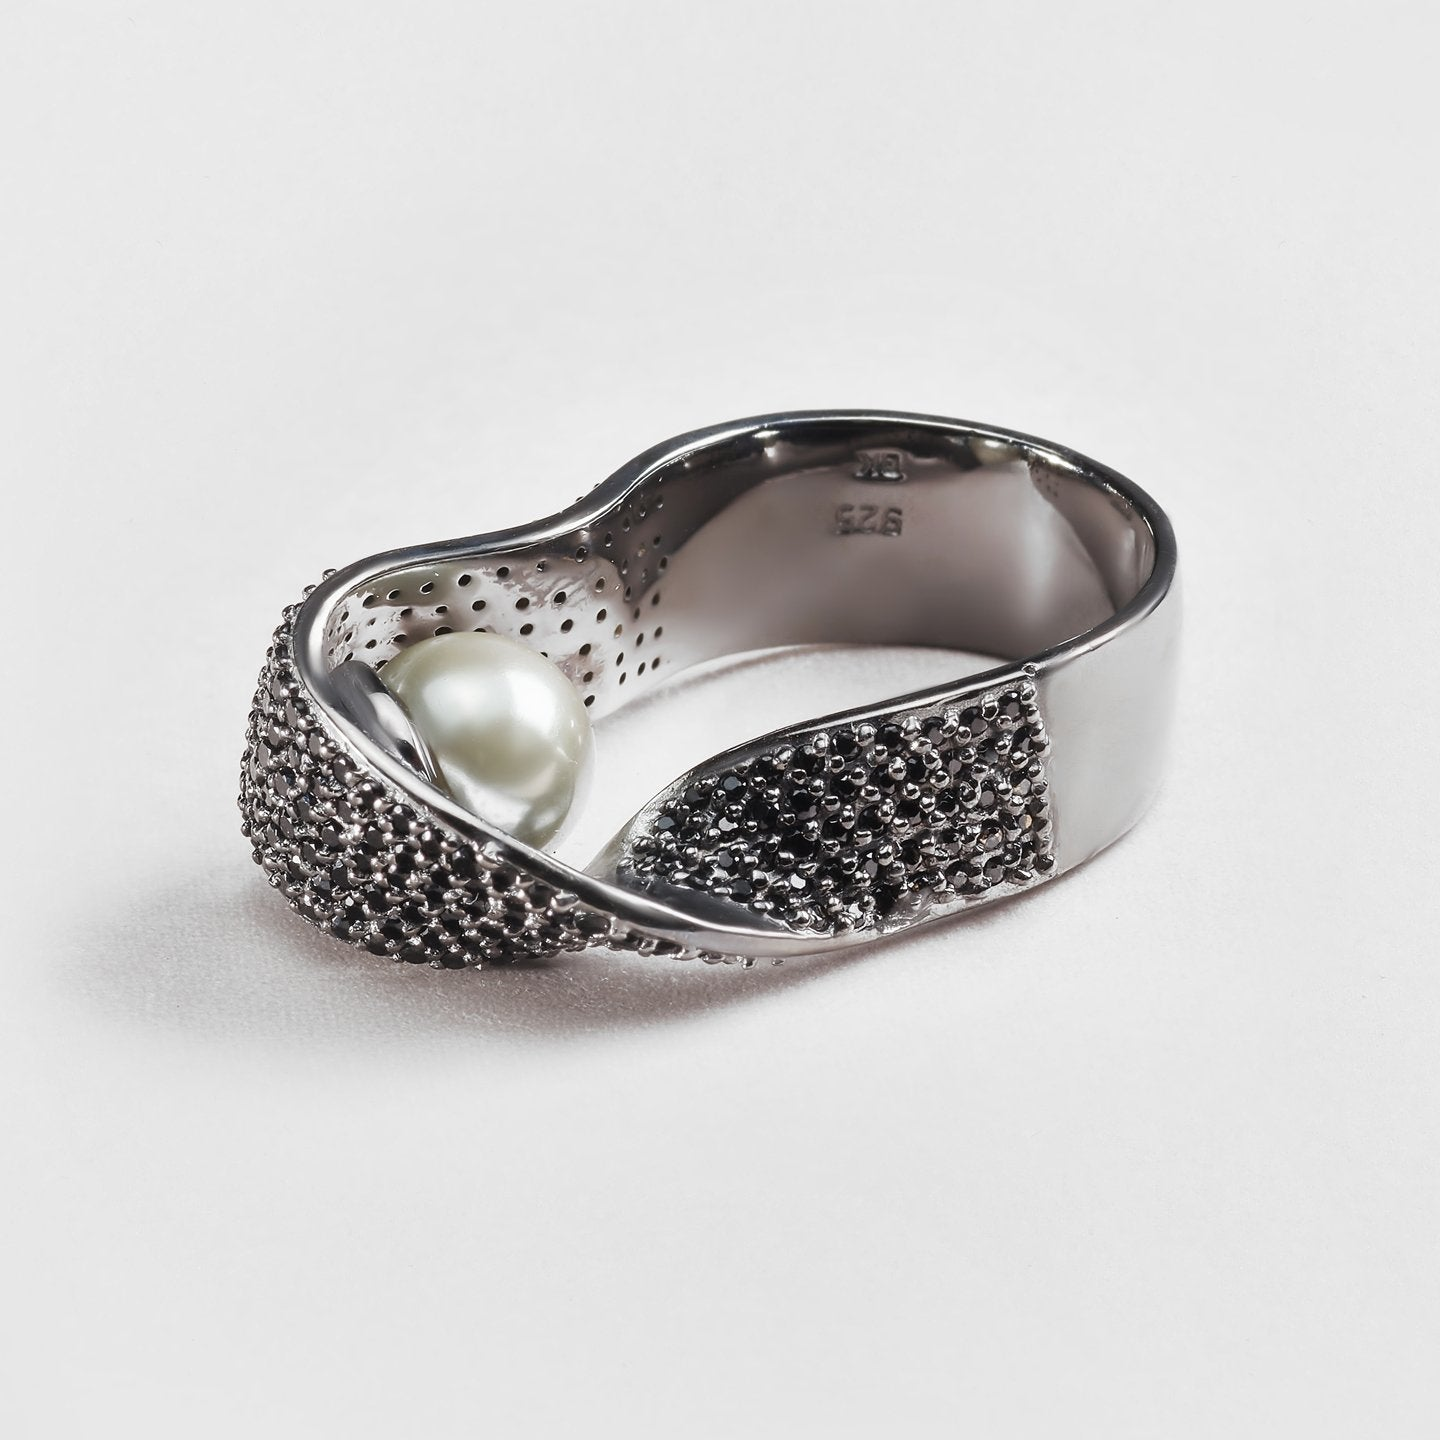 Orpha Pearl and Spinel Ring